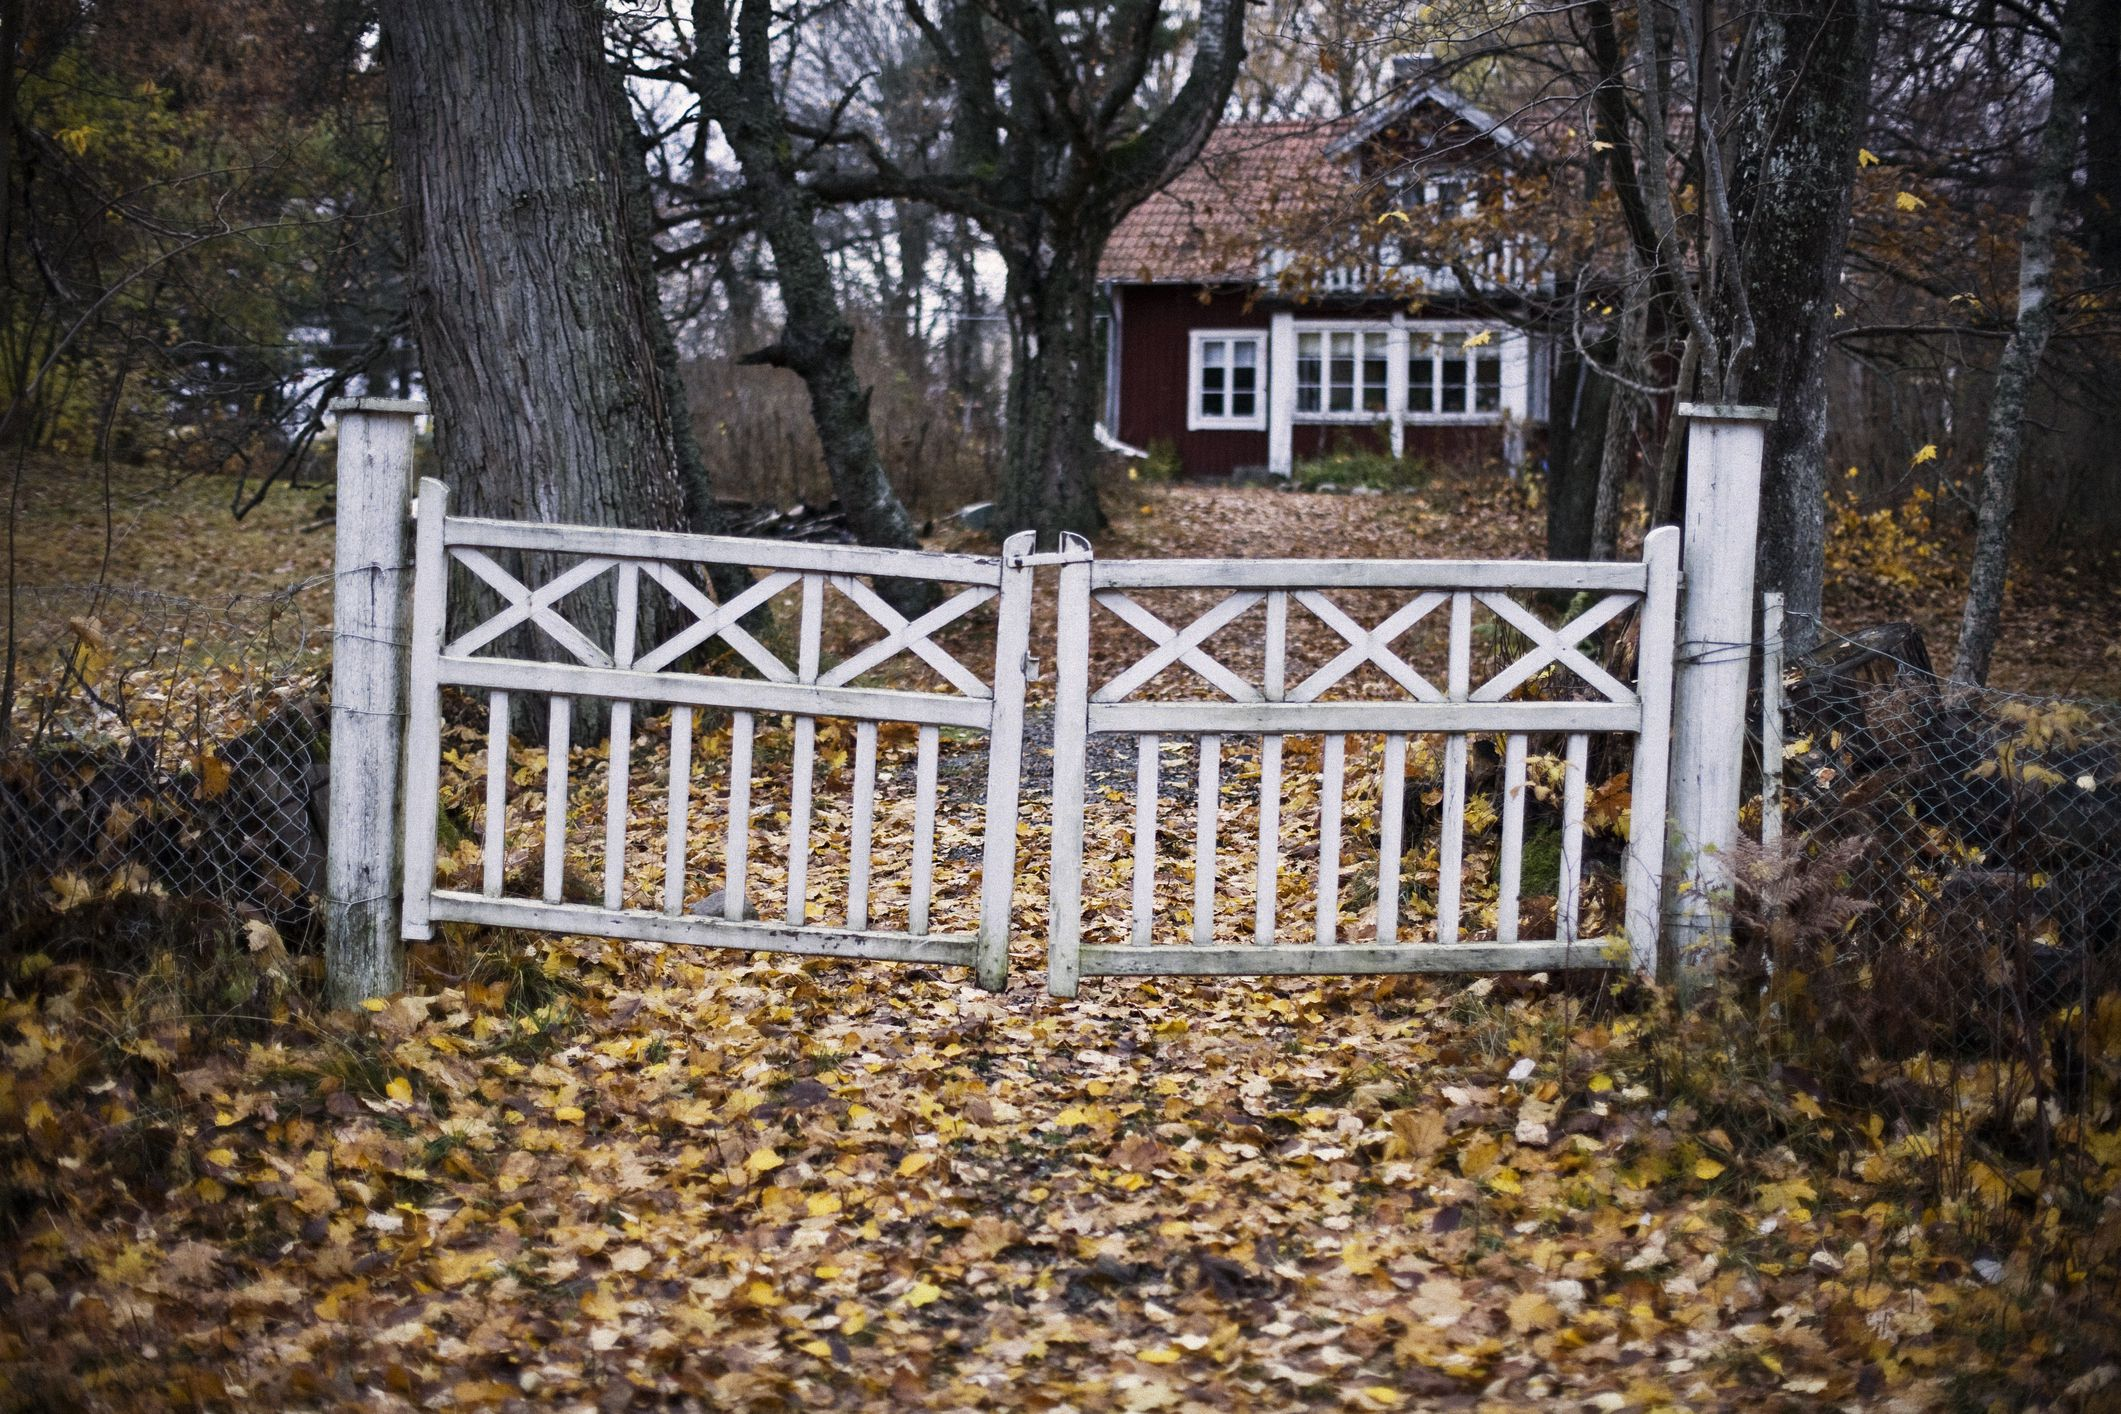 How To Fix A Sagging Wood Or Metal Fence Gate